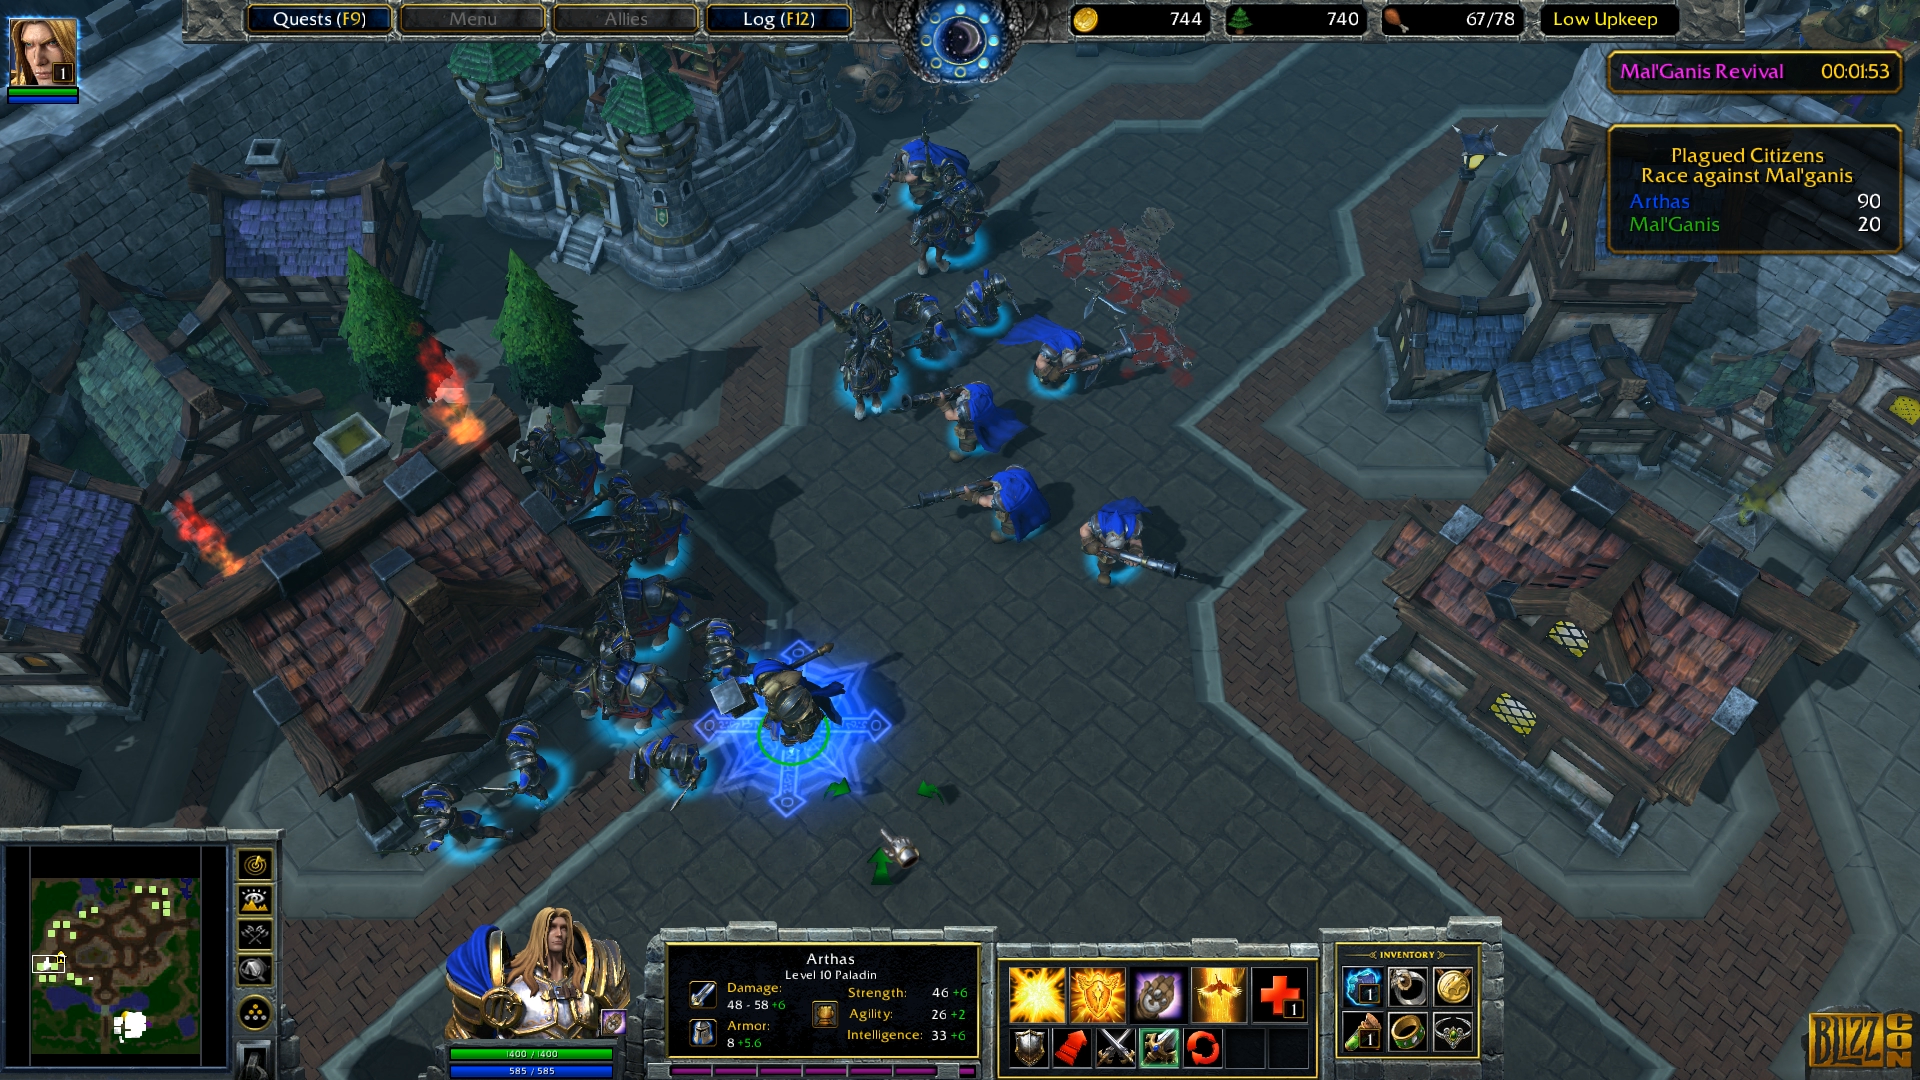 BlizzCon 2018: Warcraft III: Reforged is a remaster and